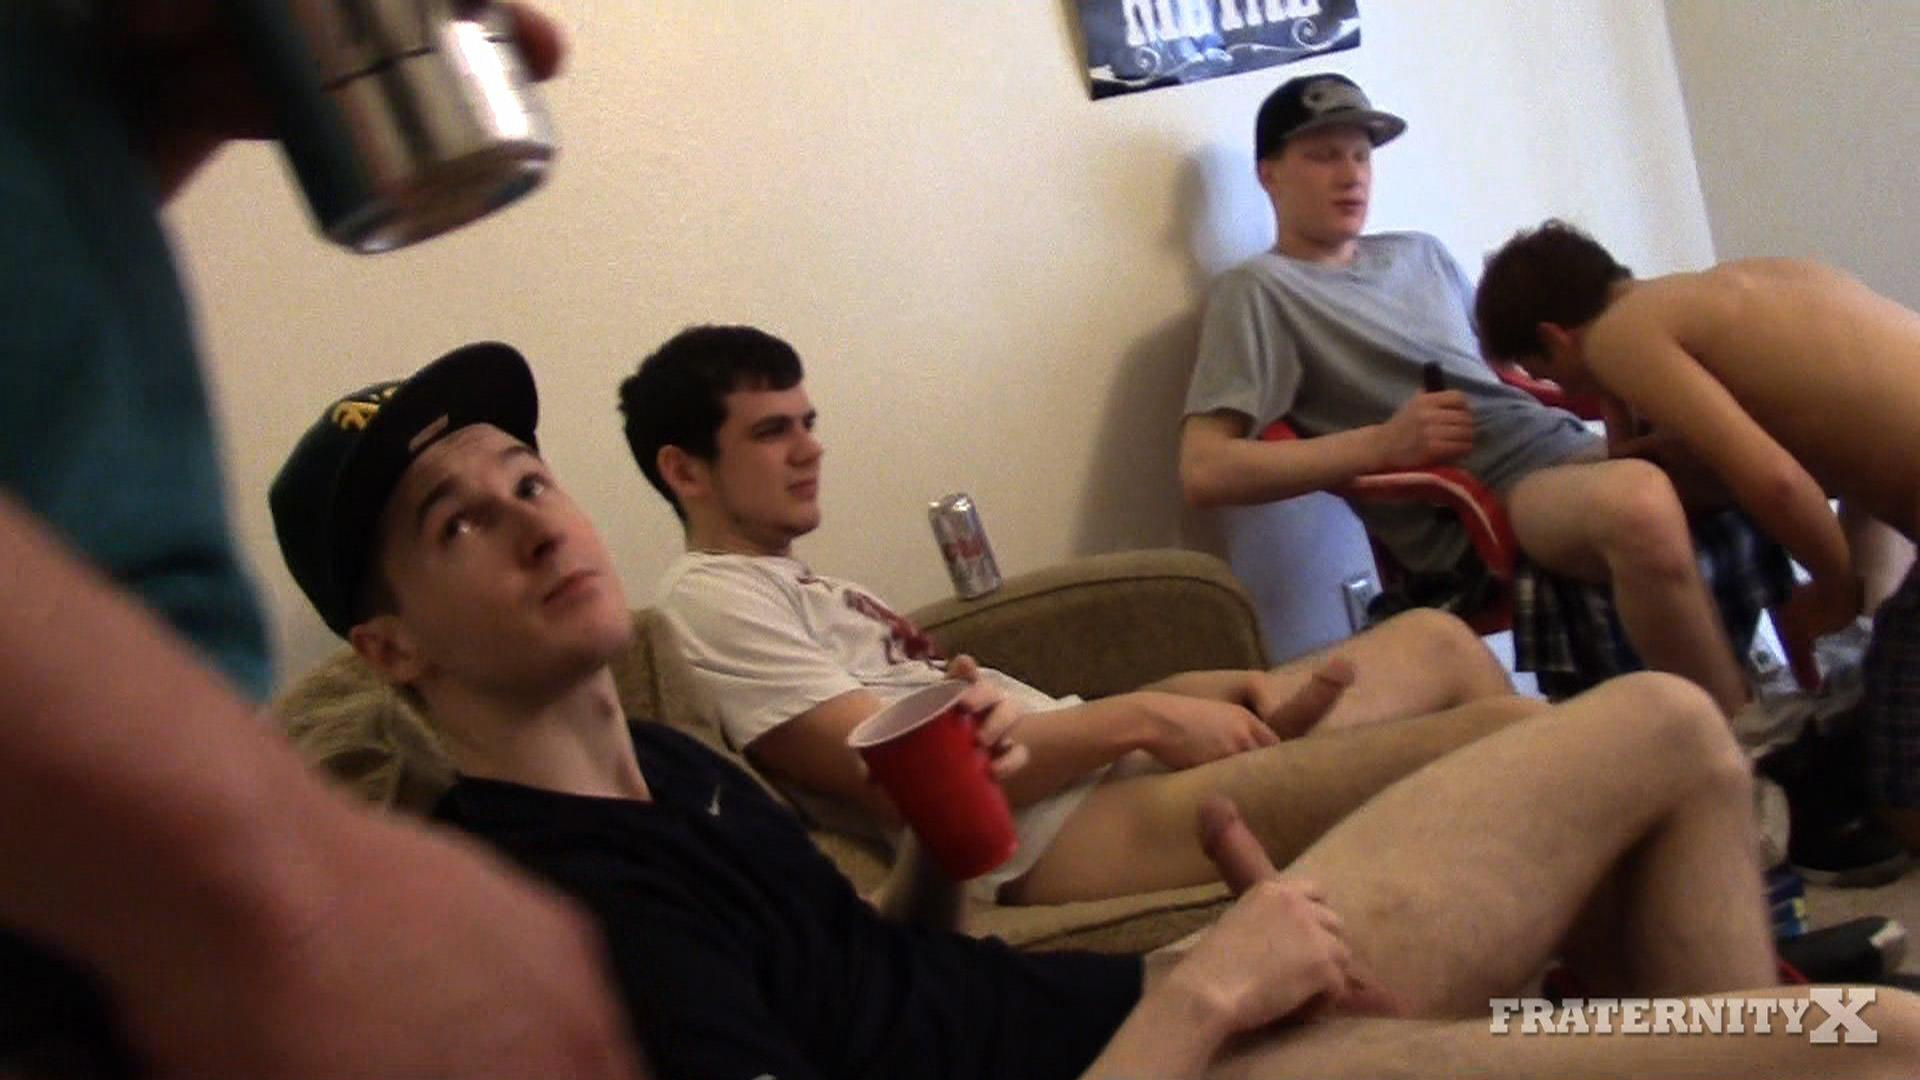 Frat boys farting cum movies gay so this 4